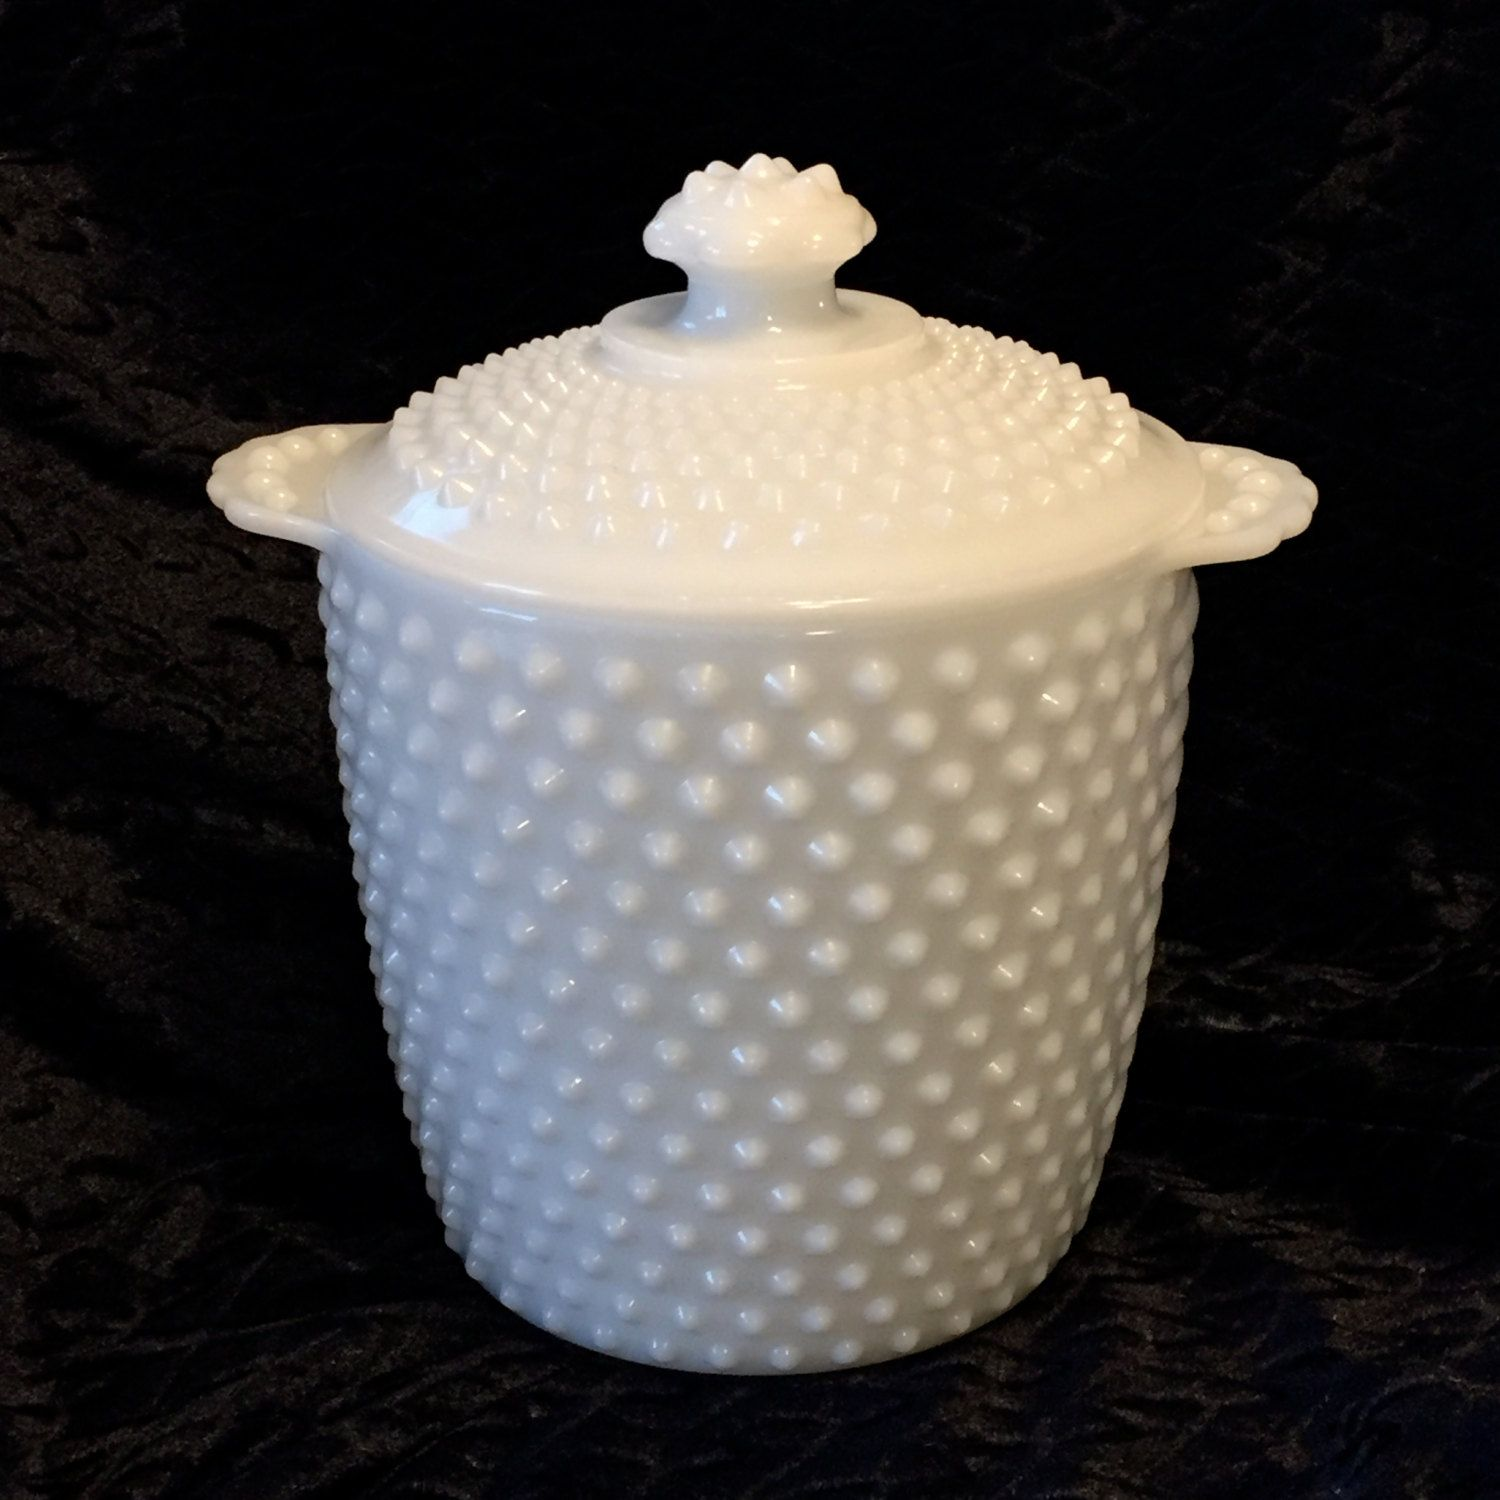 Vintage Hobnail  Milk Glass Lidded Cookie/Biscuit Jar or Ice Bucket with handles 1950s by Nanaslittlecottage on Etsy